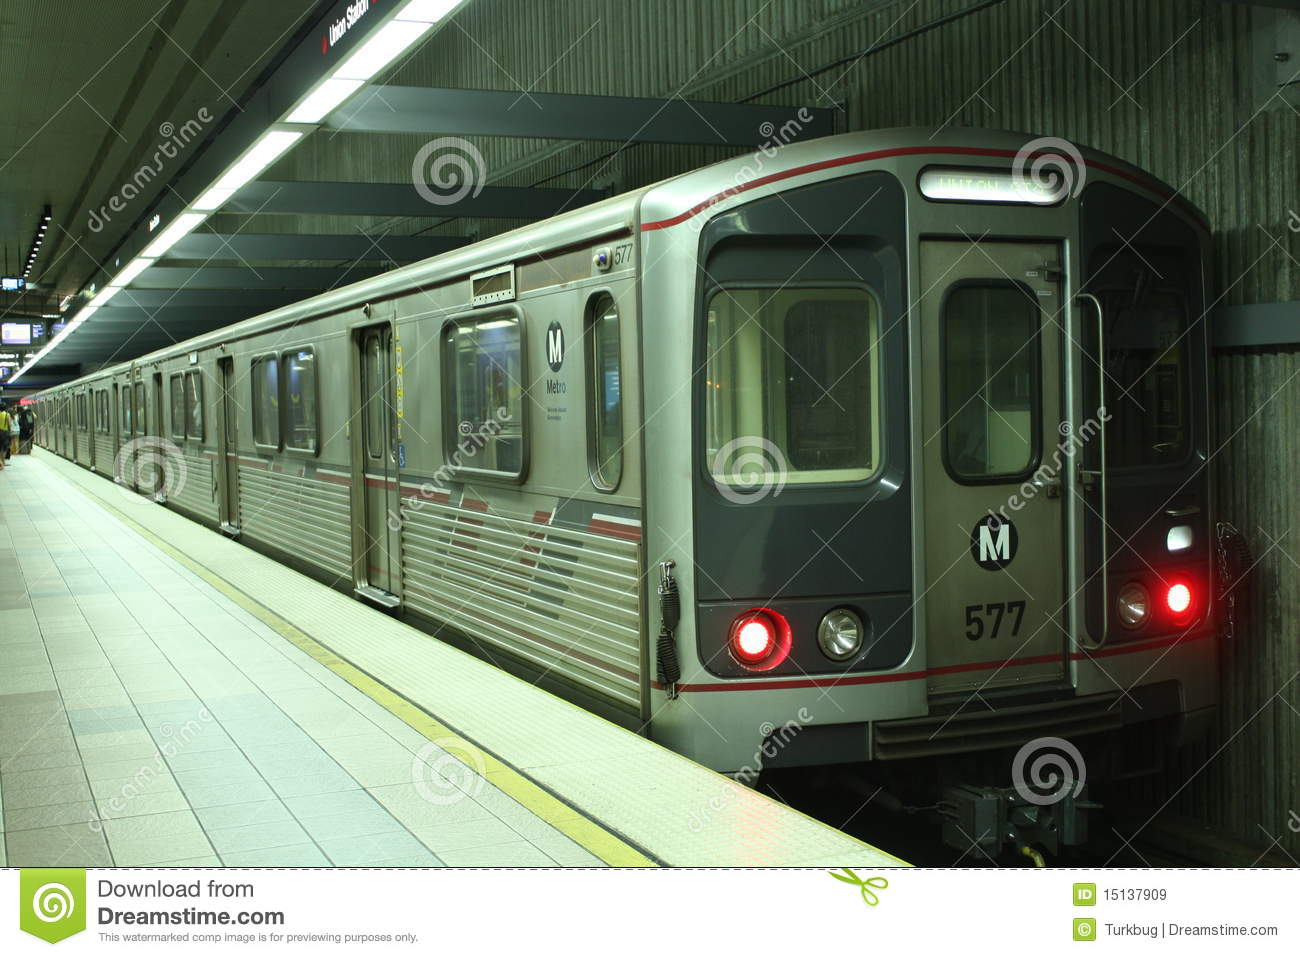 cta chicago map with Royalty Free Stock Images Metro Line Subway Train Image15137909 on 4467 Chicago Skyline Mecca Of The World moreover 244812929716593851 additionally 6413070061 together with Royalty Free Stock Images Metro Line Subway Train Image15137909 likewise Cta Brown Line.